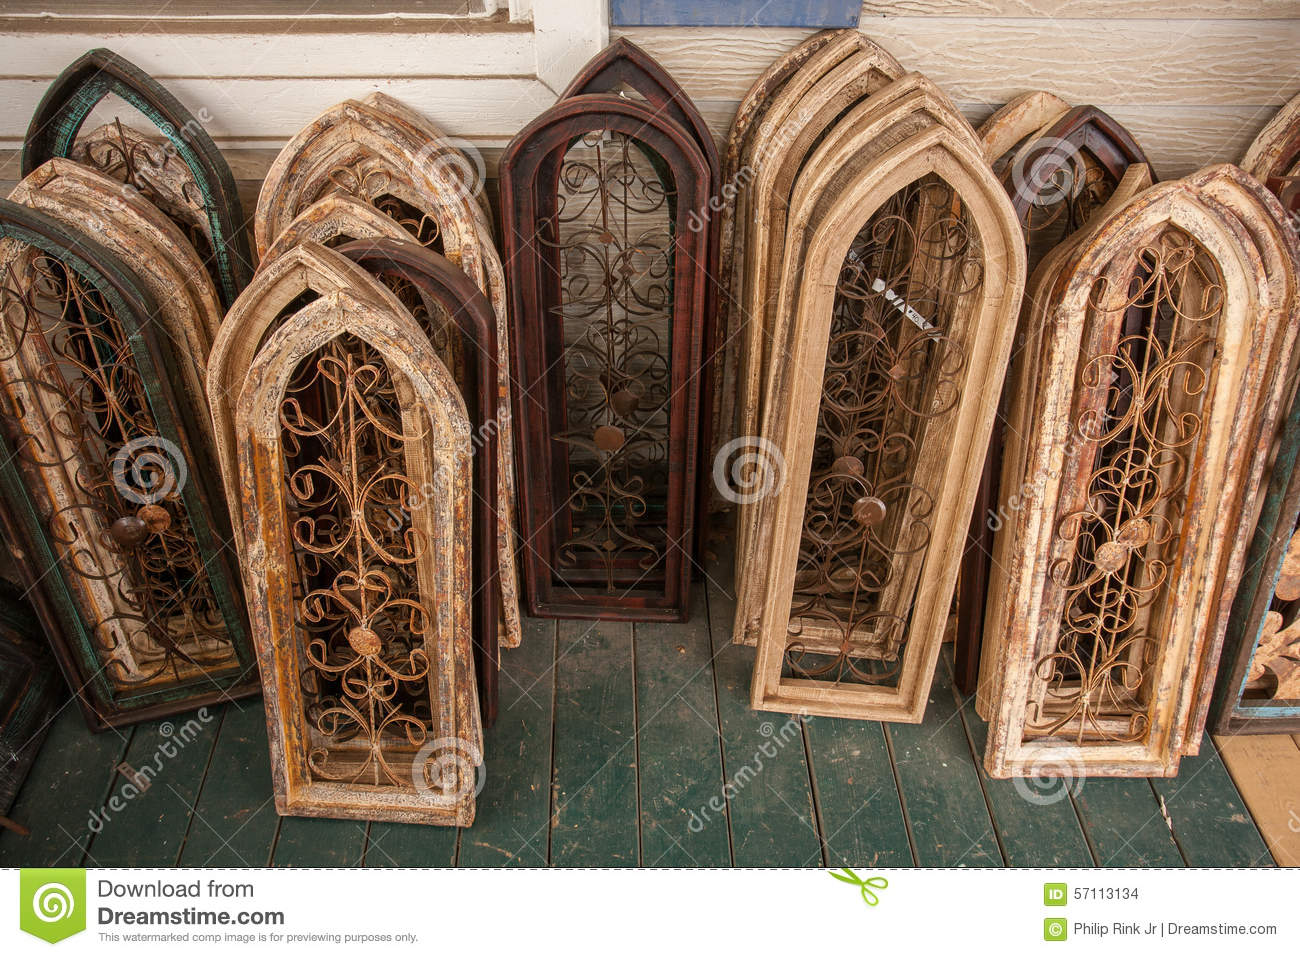 Shutters stock photo image 57113134 for House of decorative accessories